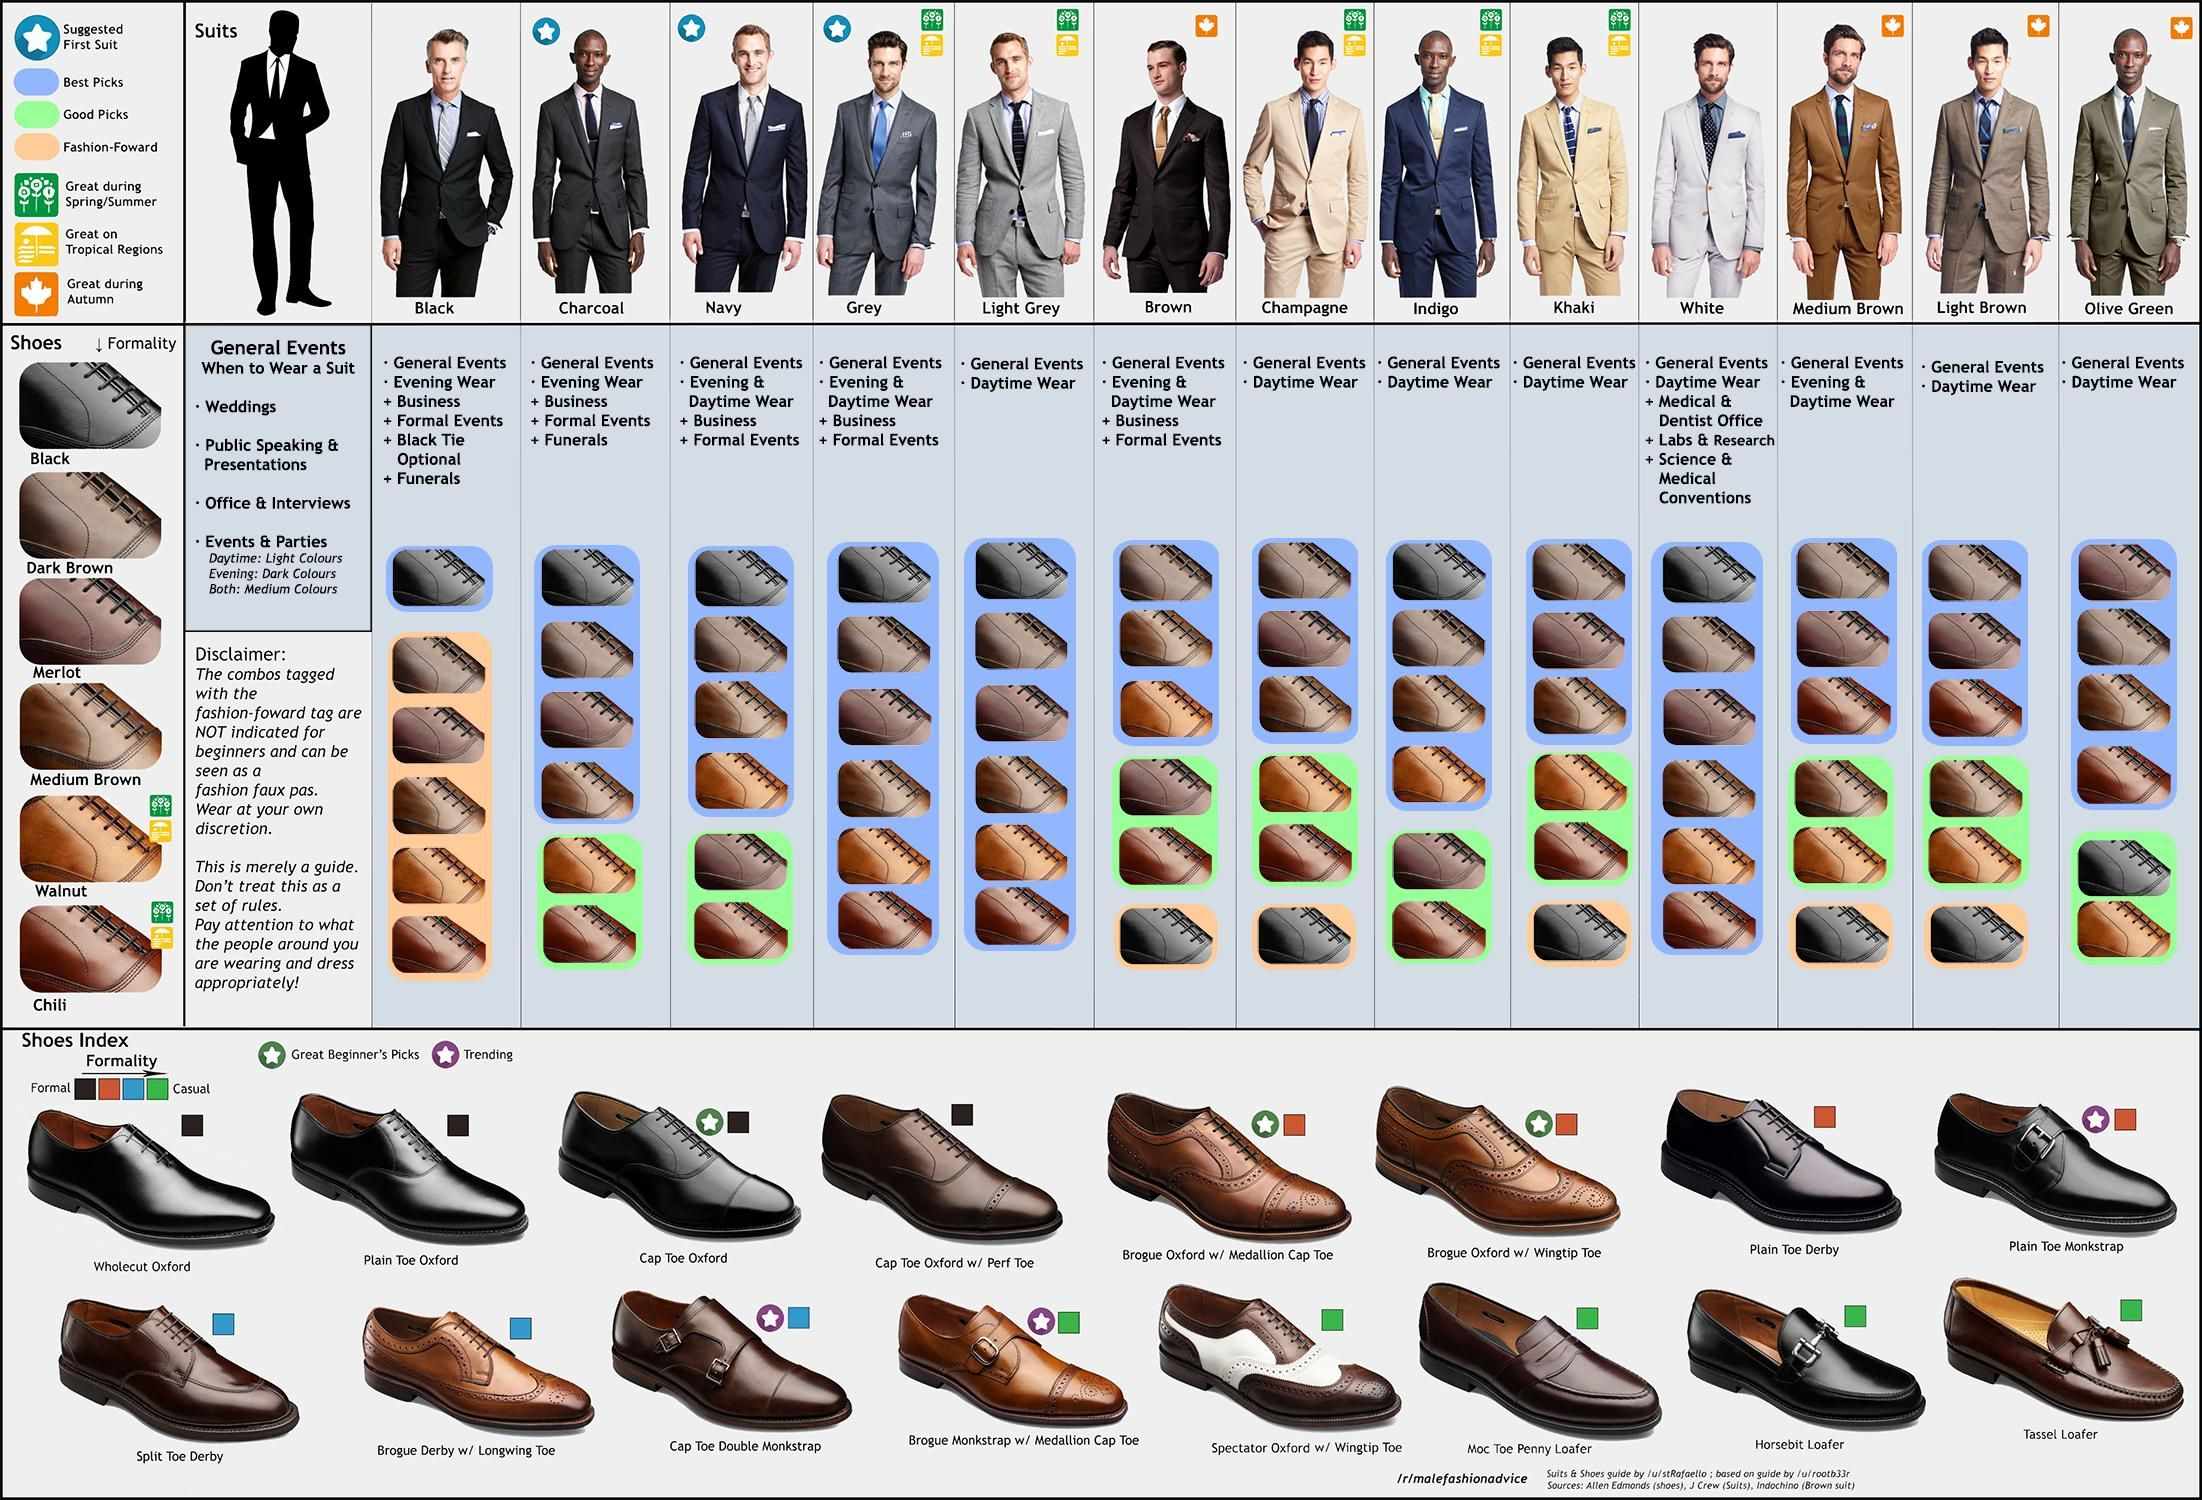 Suit and shoes guide